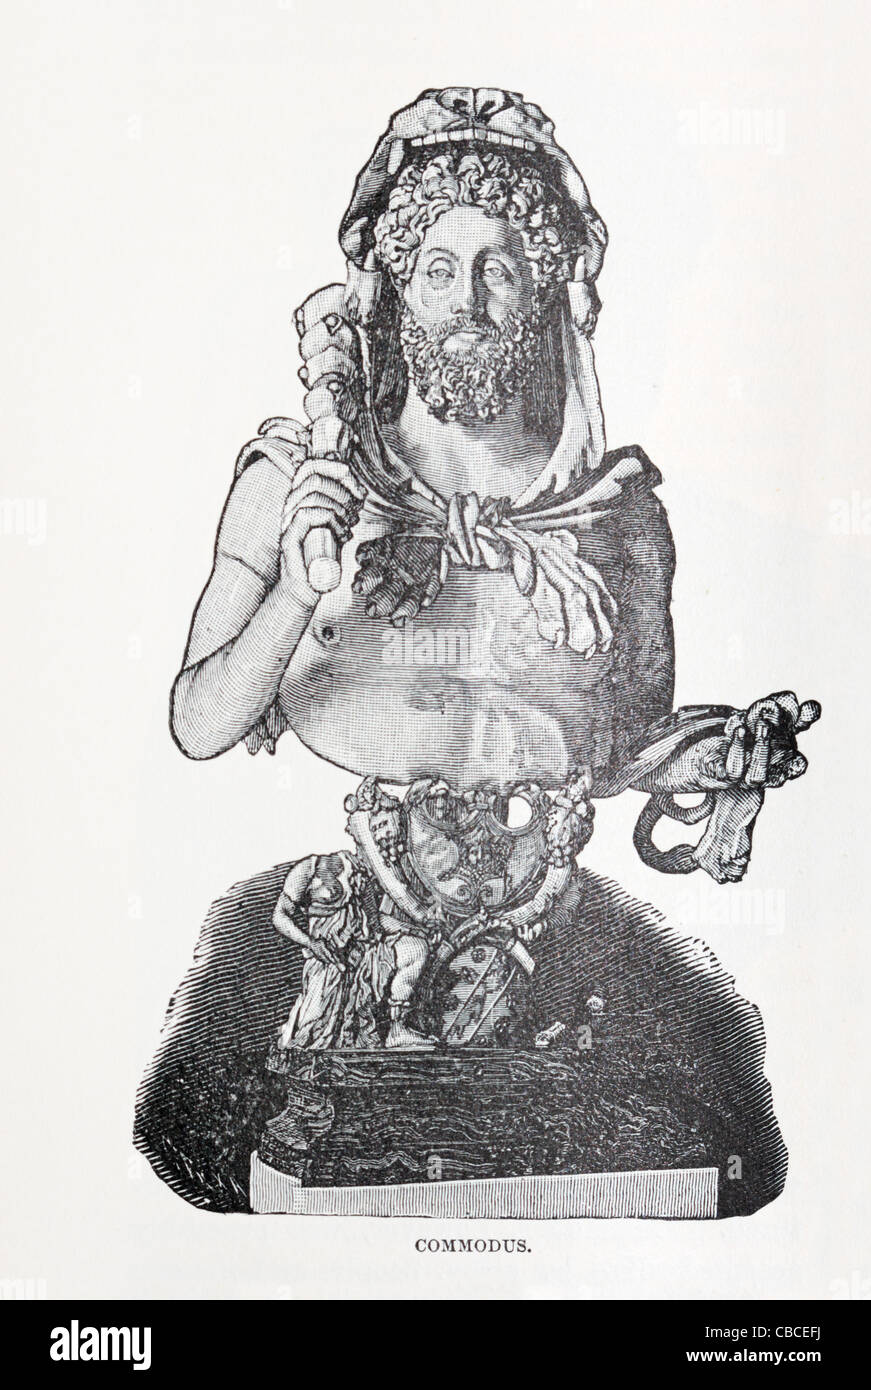 picture of bust of Commodus the Roman ruler from an 1896 book - Stock Image